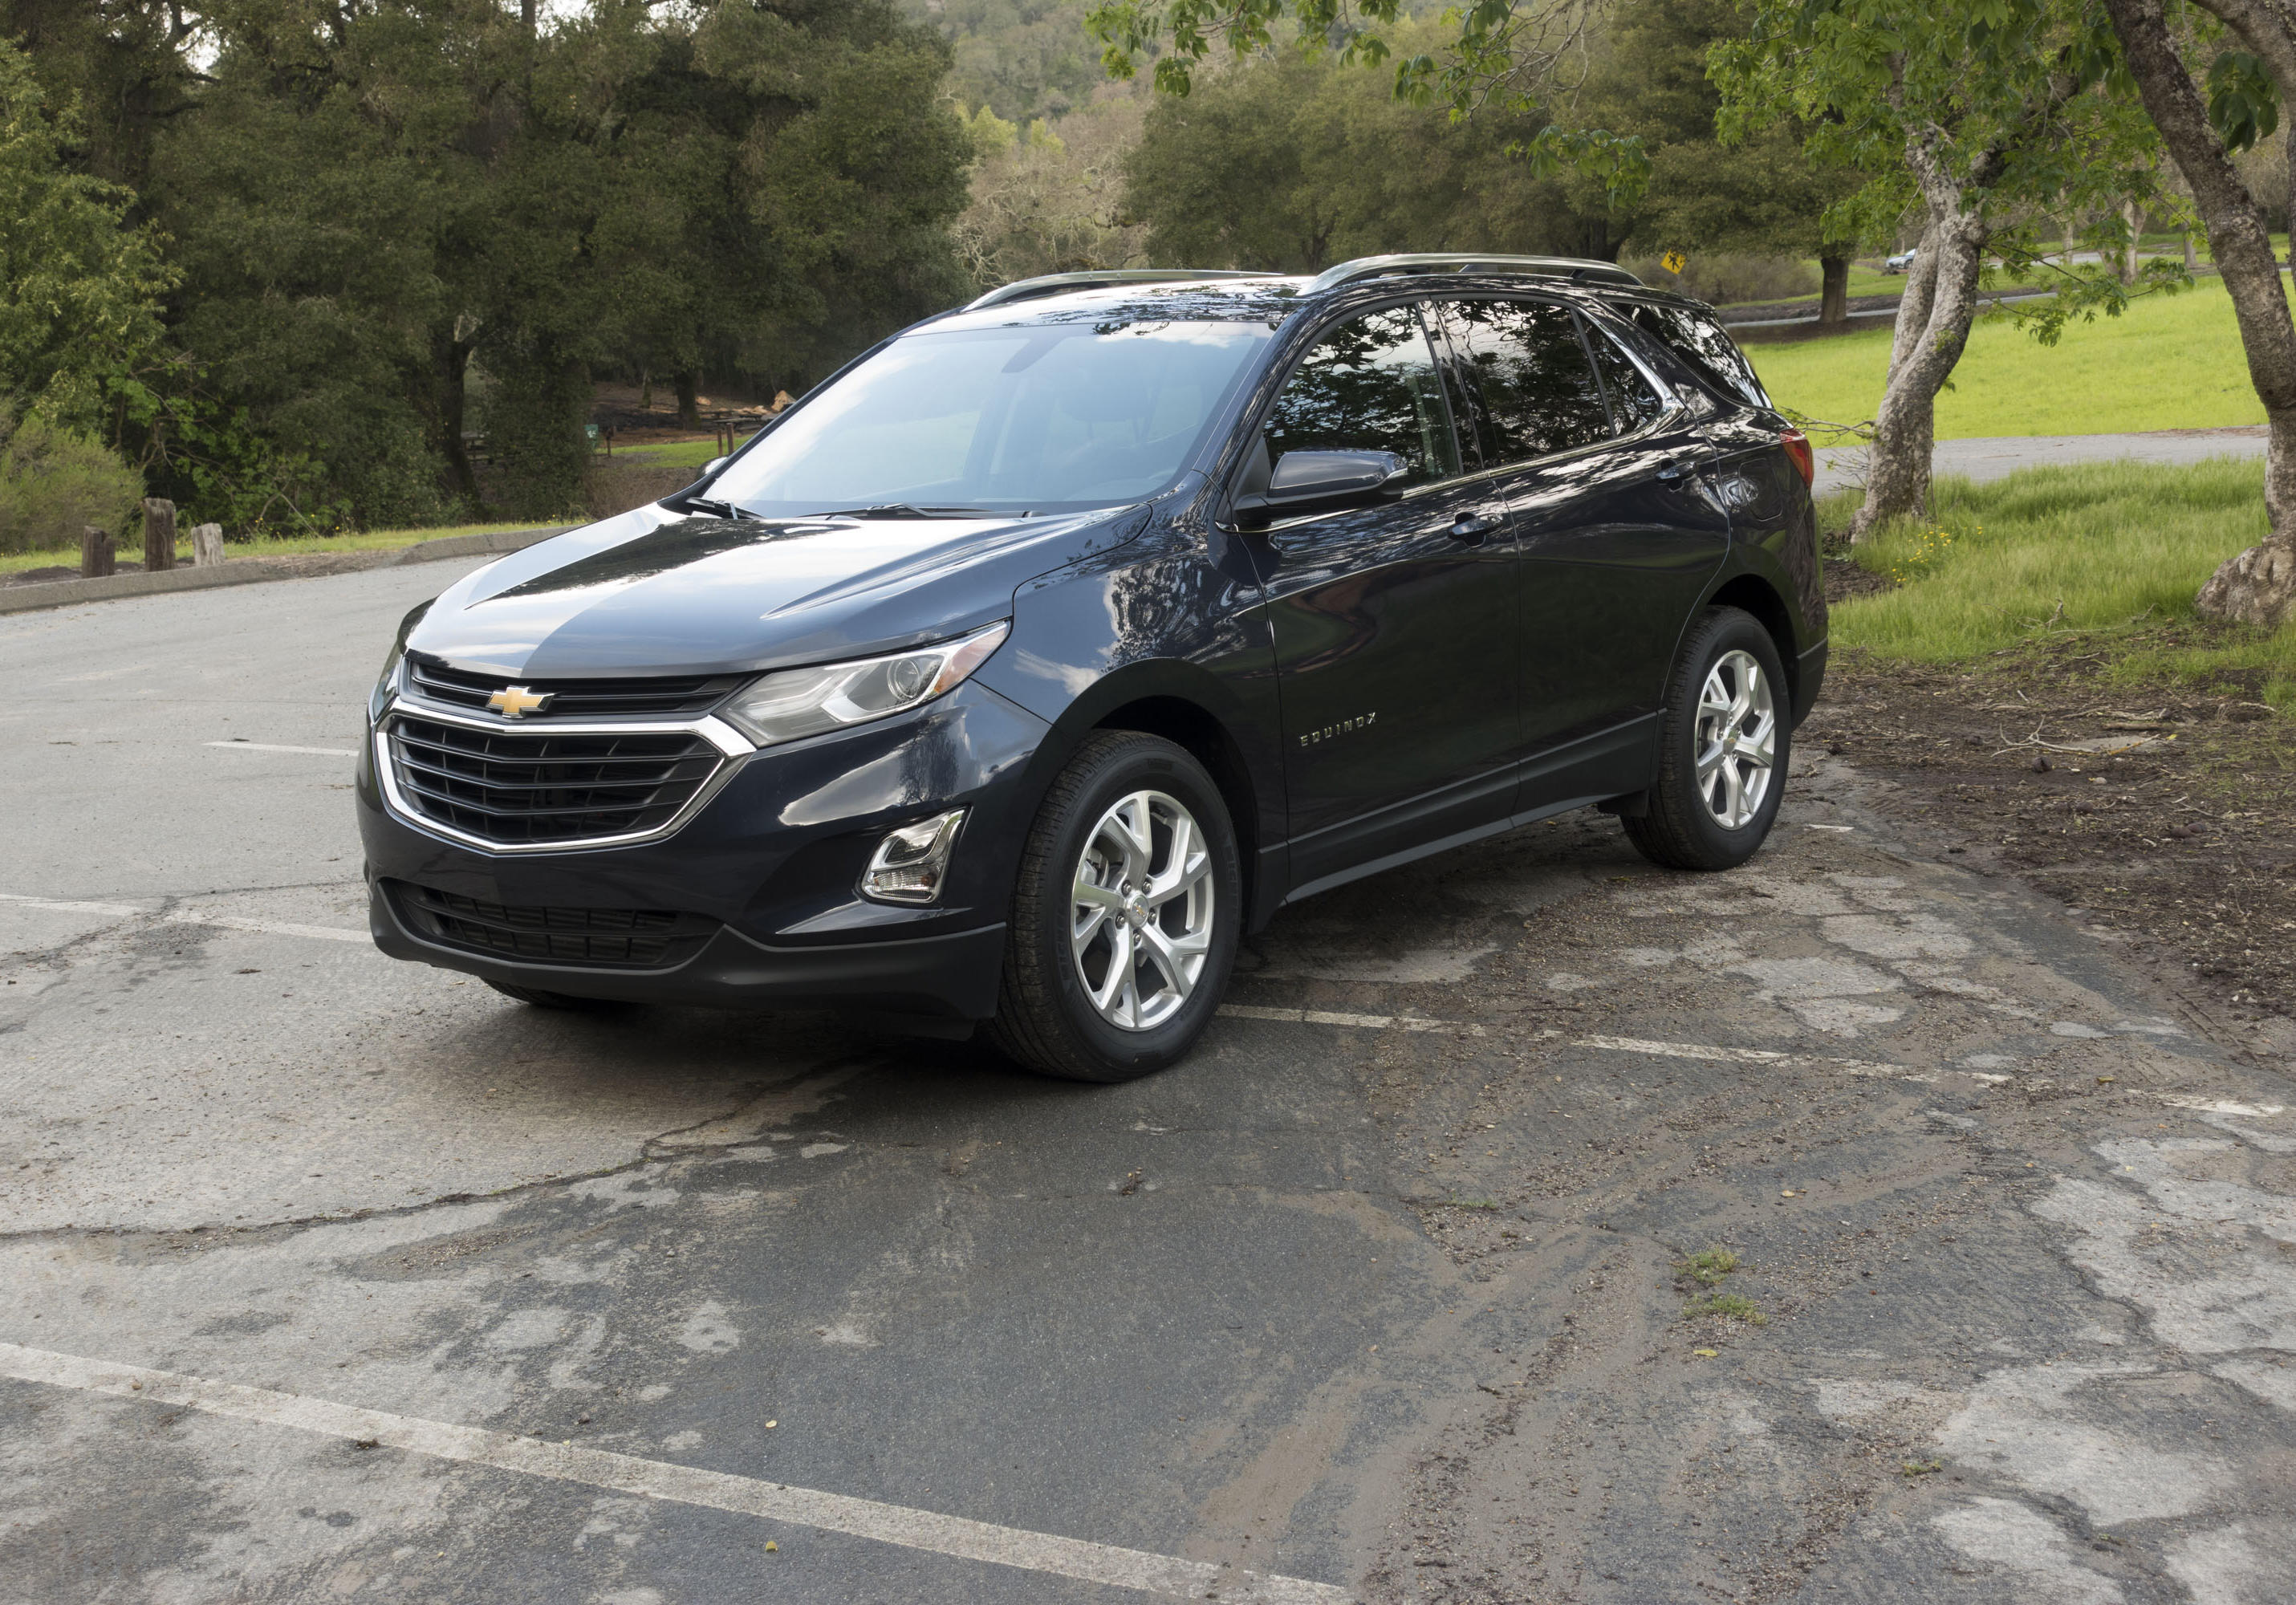 2021 Chevrolet Equinox Reviews News Pictures And Video Roadshow